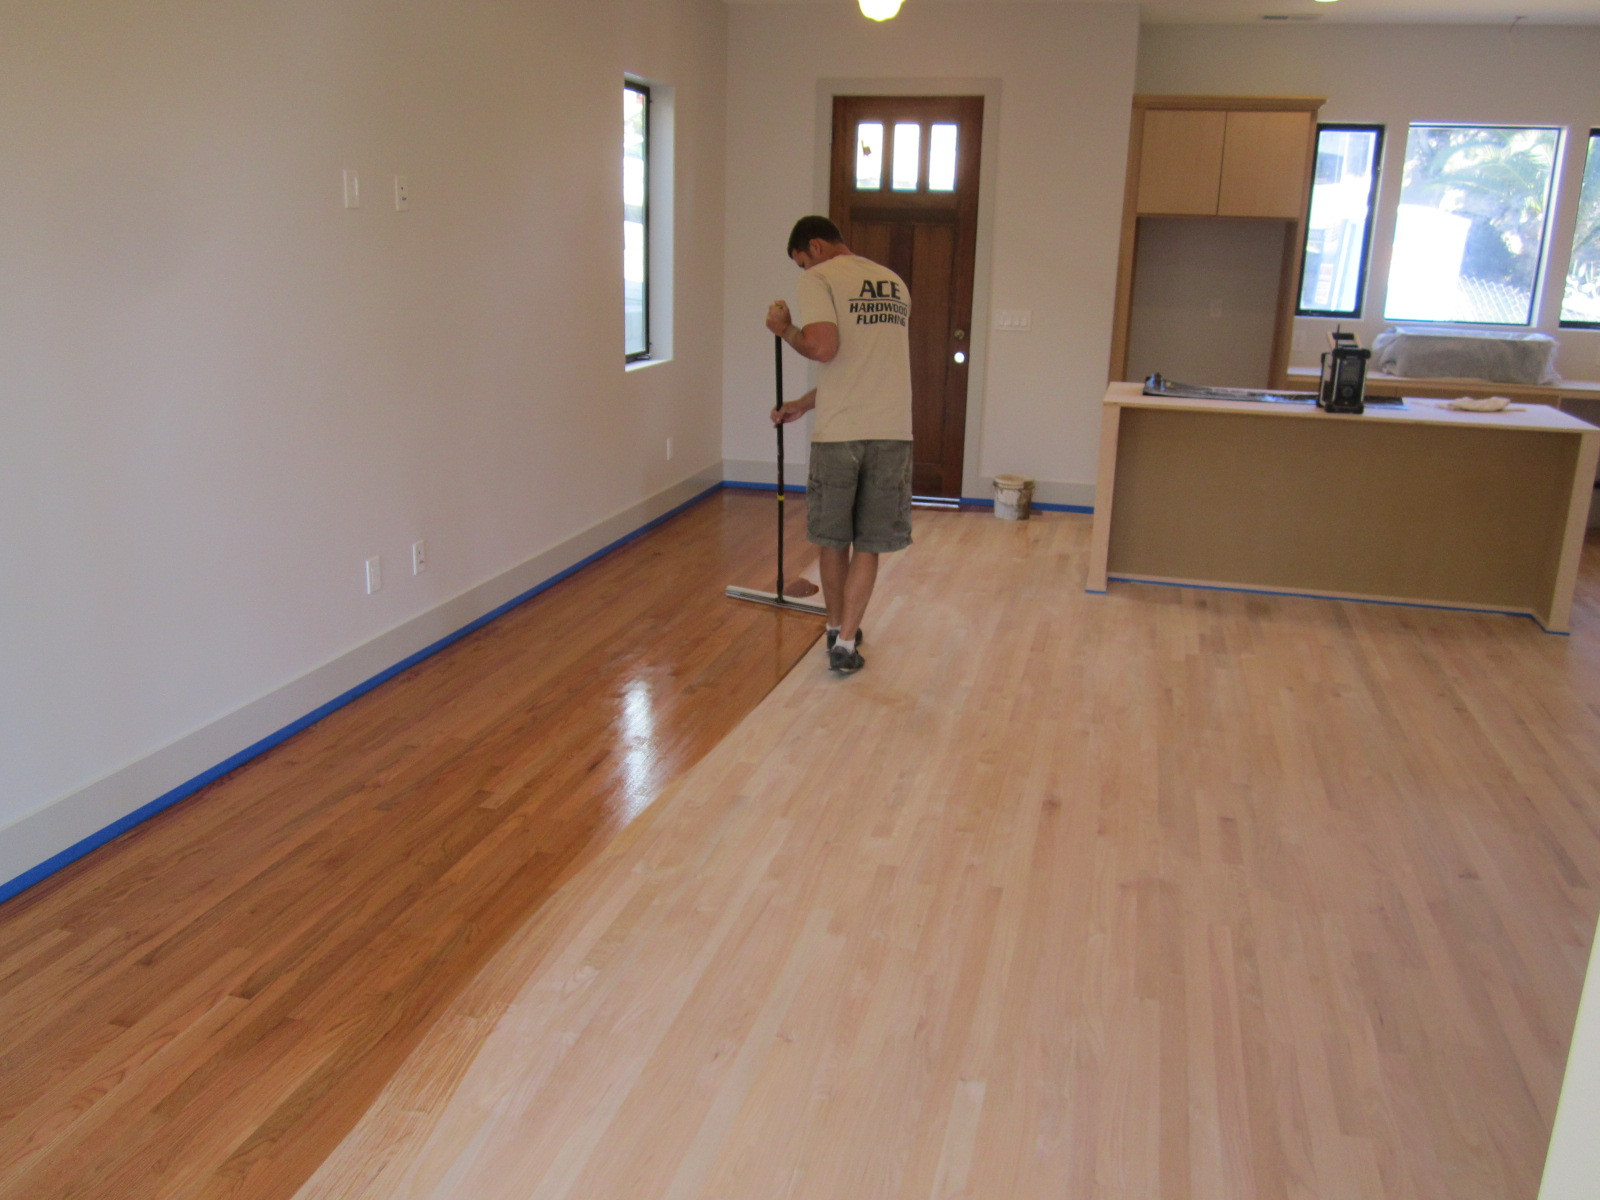 maple hardwood floor stain colors of hardwood floor refinishing richmond va hardwood flooring services for gallery of hardwood floor refinishing richmond va hardwood flooring services